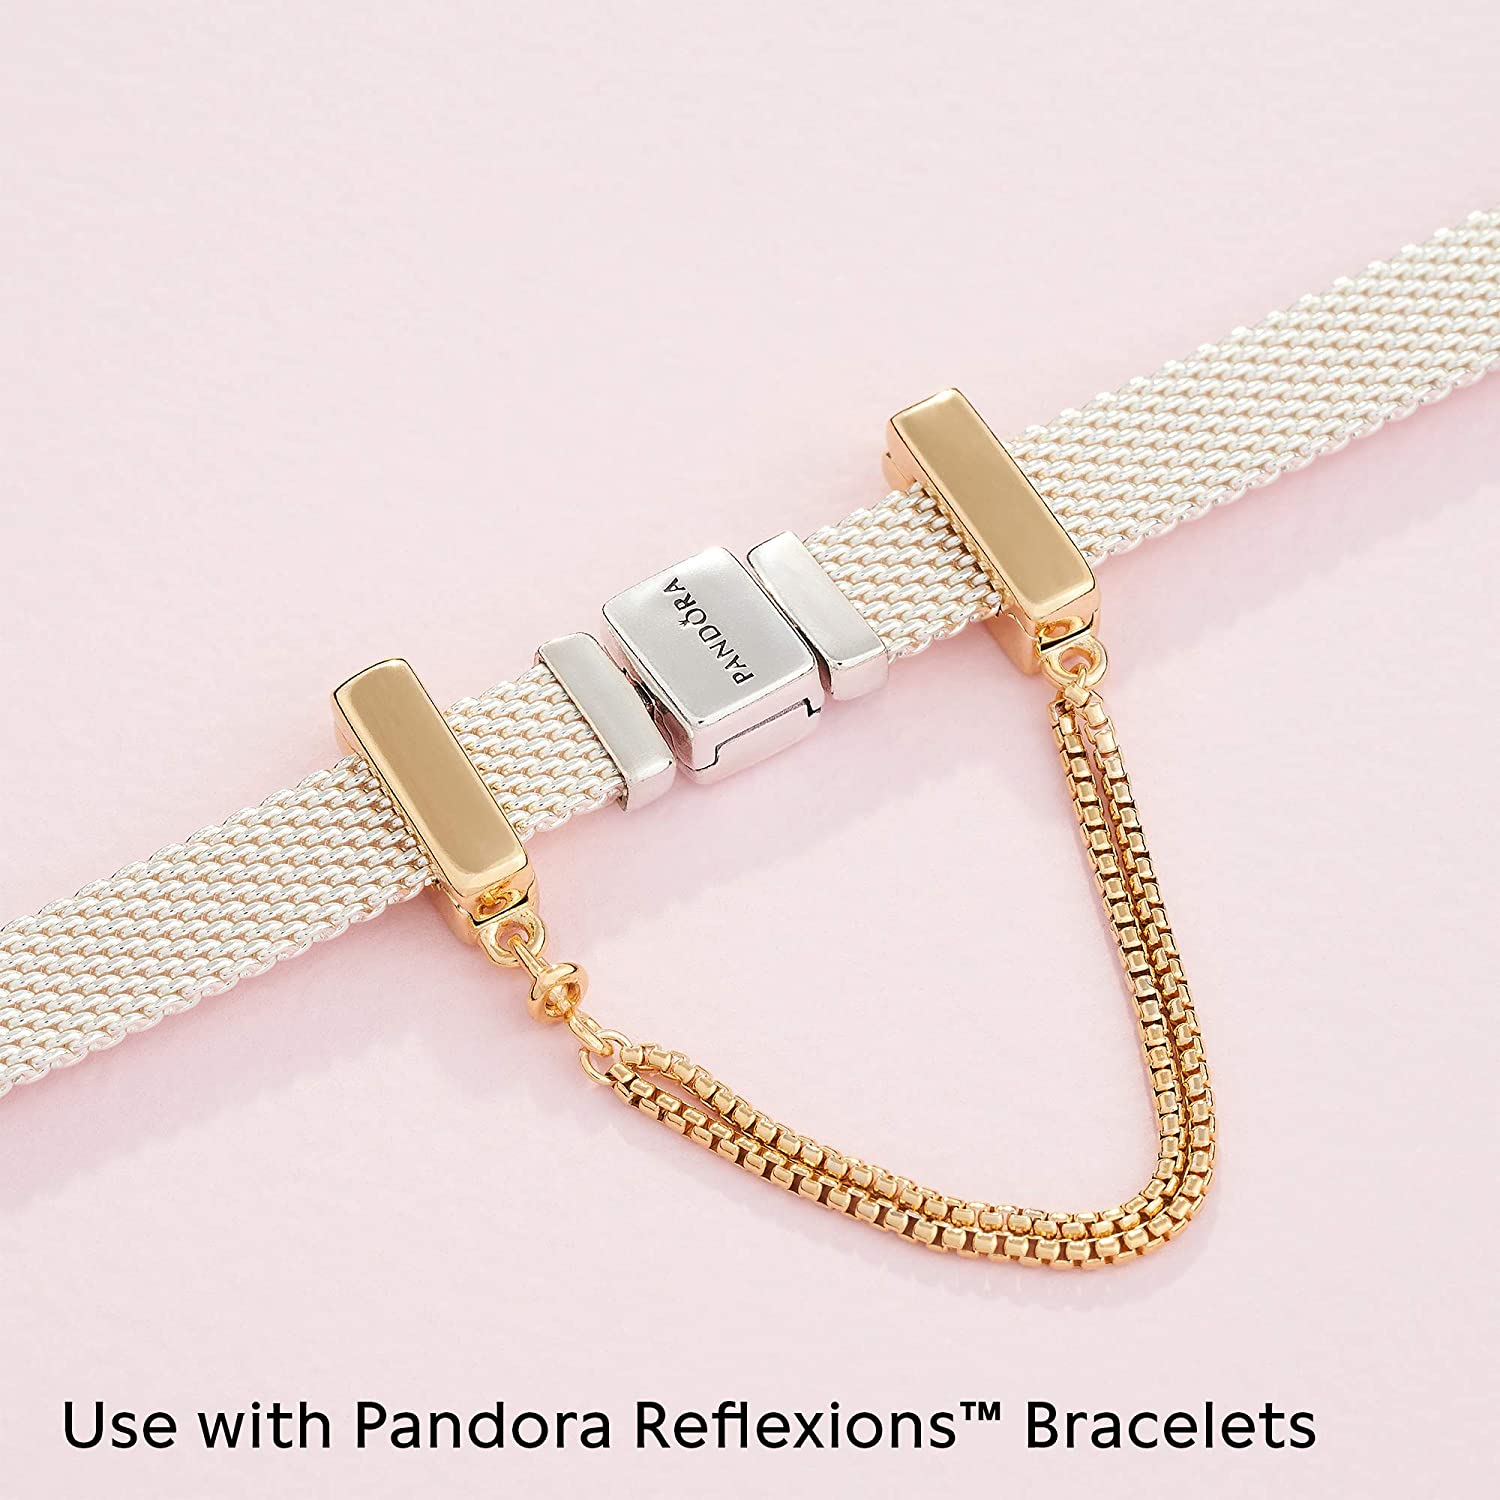 Shine Reflexions Floating Chains Charm in 18K gold-plated Sterling Silver ONLY Compatible Reflexions Bracelet